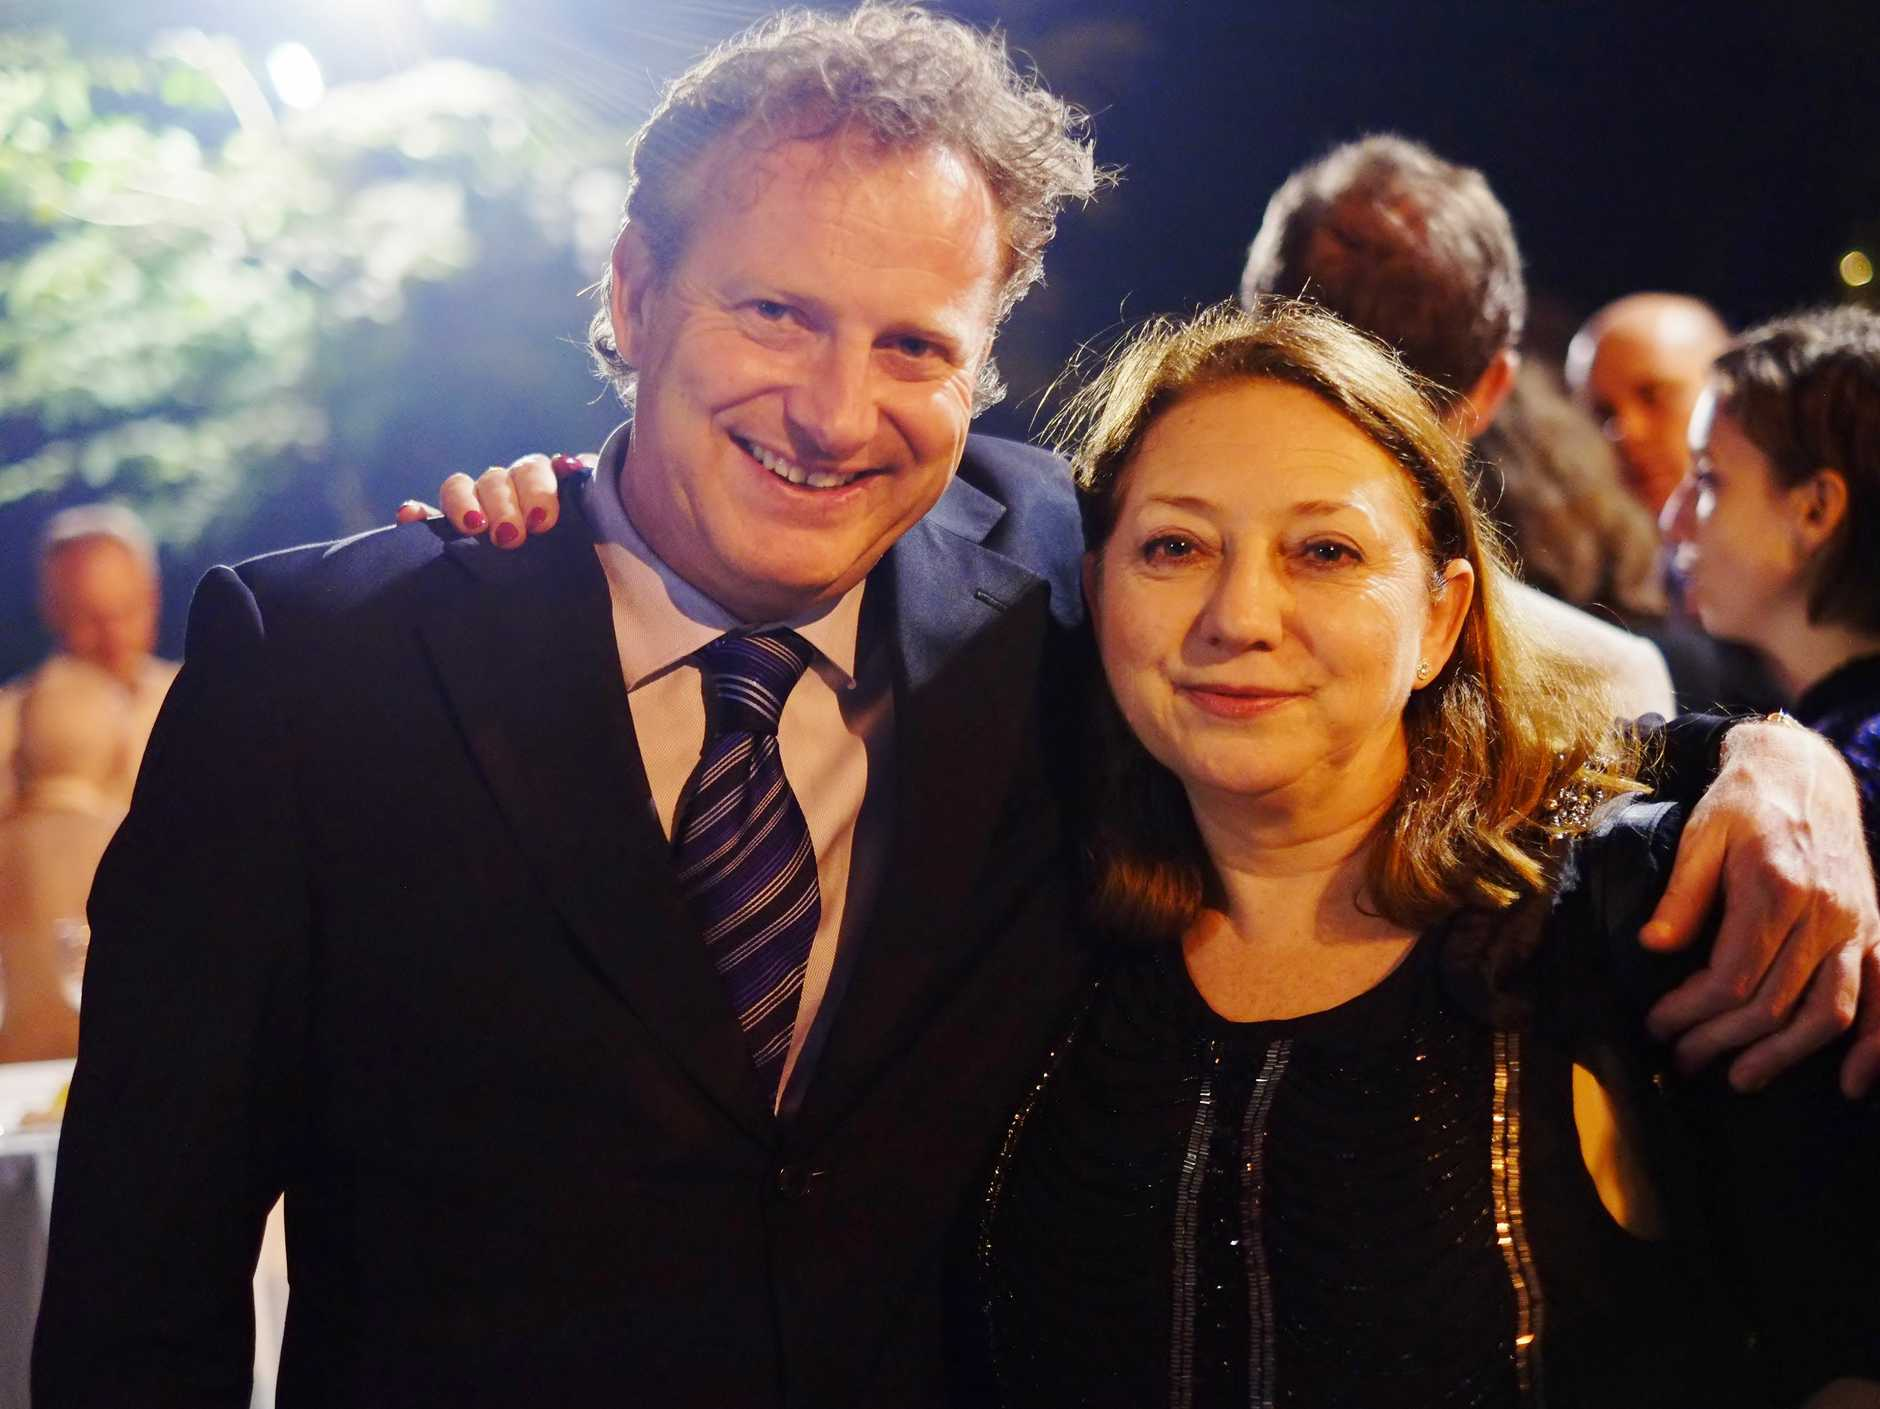 Conductor Alexander Briger AO and his sister, Australian World Orchestra's CEO Gabrielle Thompson AM.